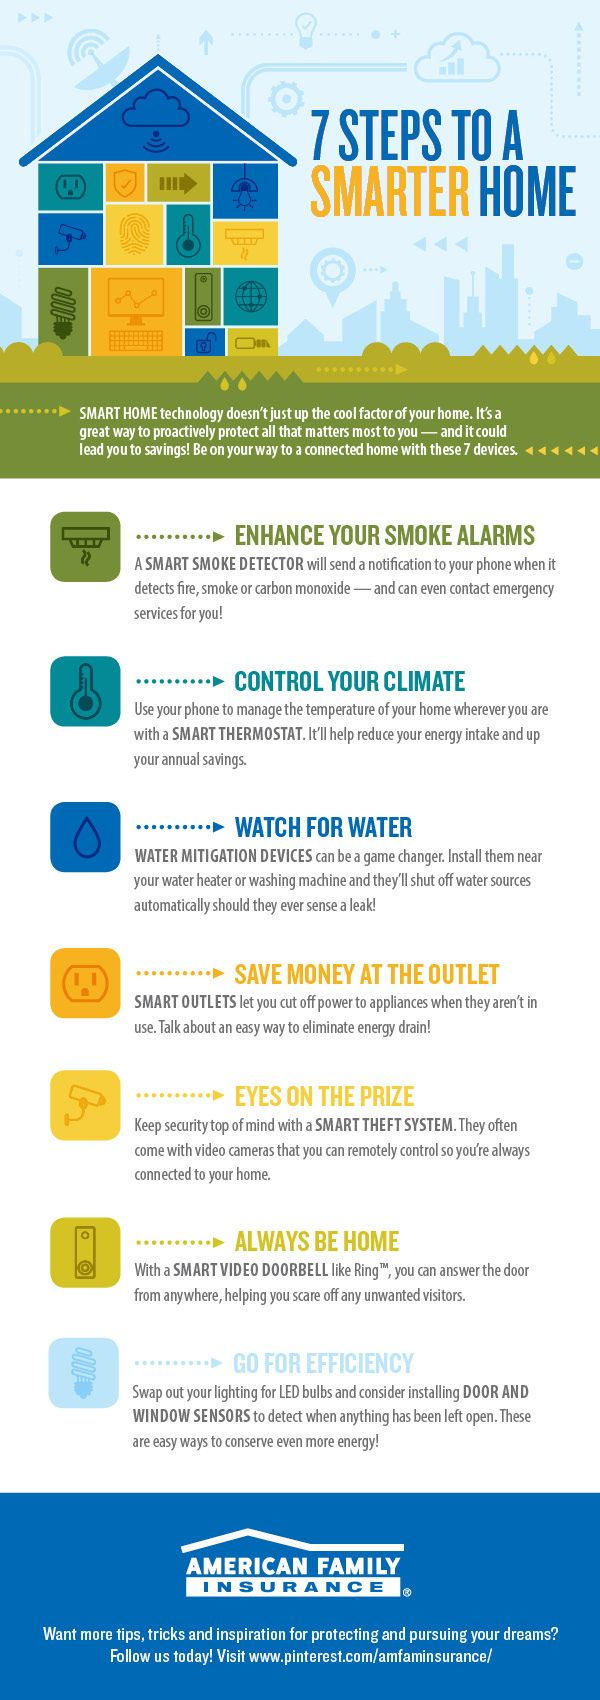 Did you know that smart technology can help you save money and proactively protect your home? Check out some of the cool devices you could be taking advantage of today!